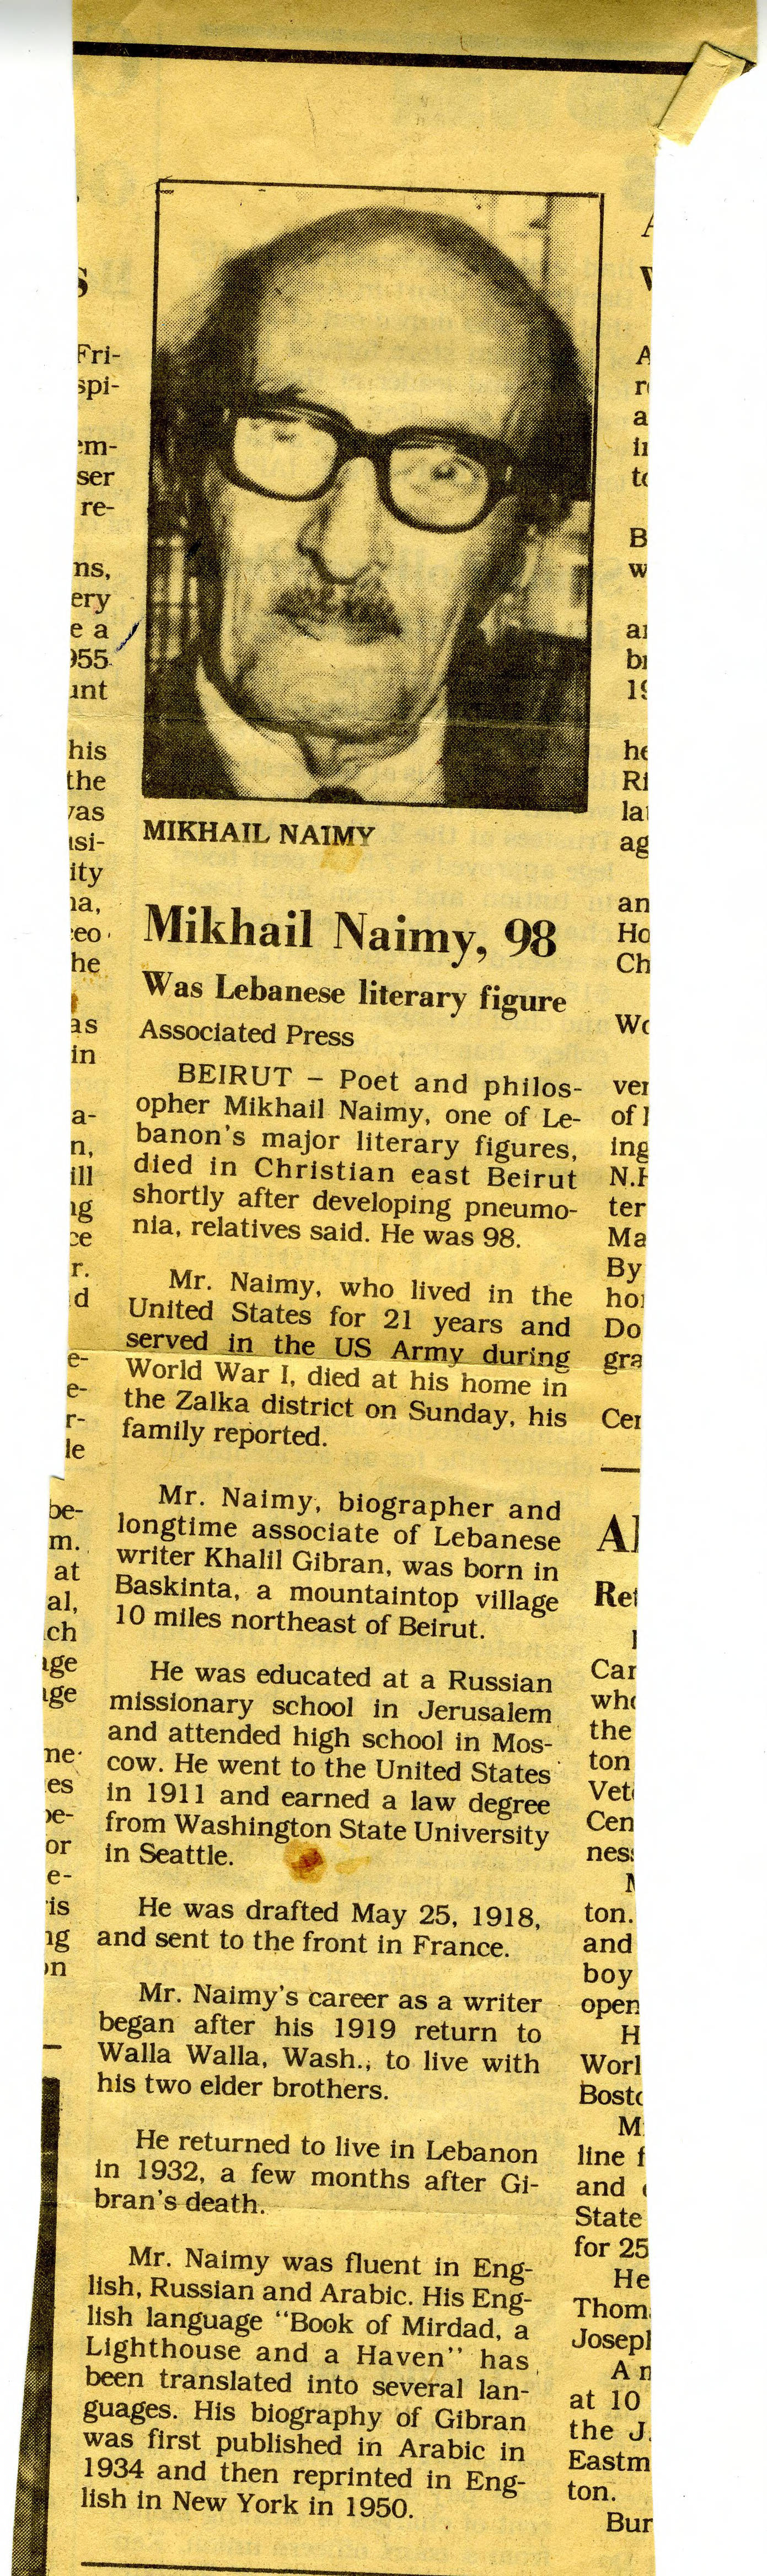 Associated Press, Obituary - Mikhail Naimy, Unknown Newspaper, February 1988.